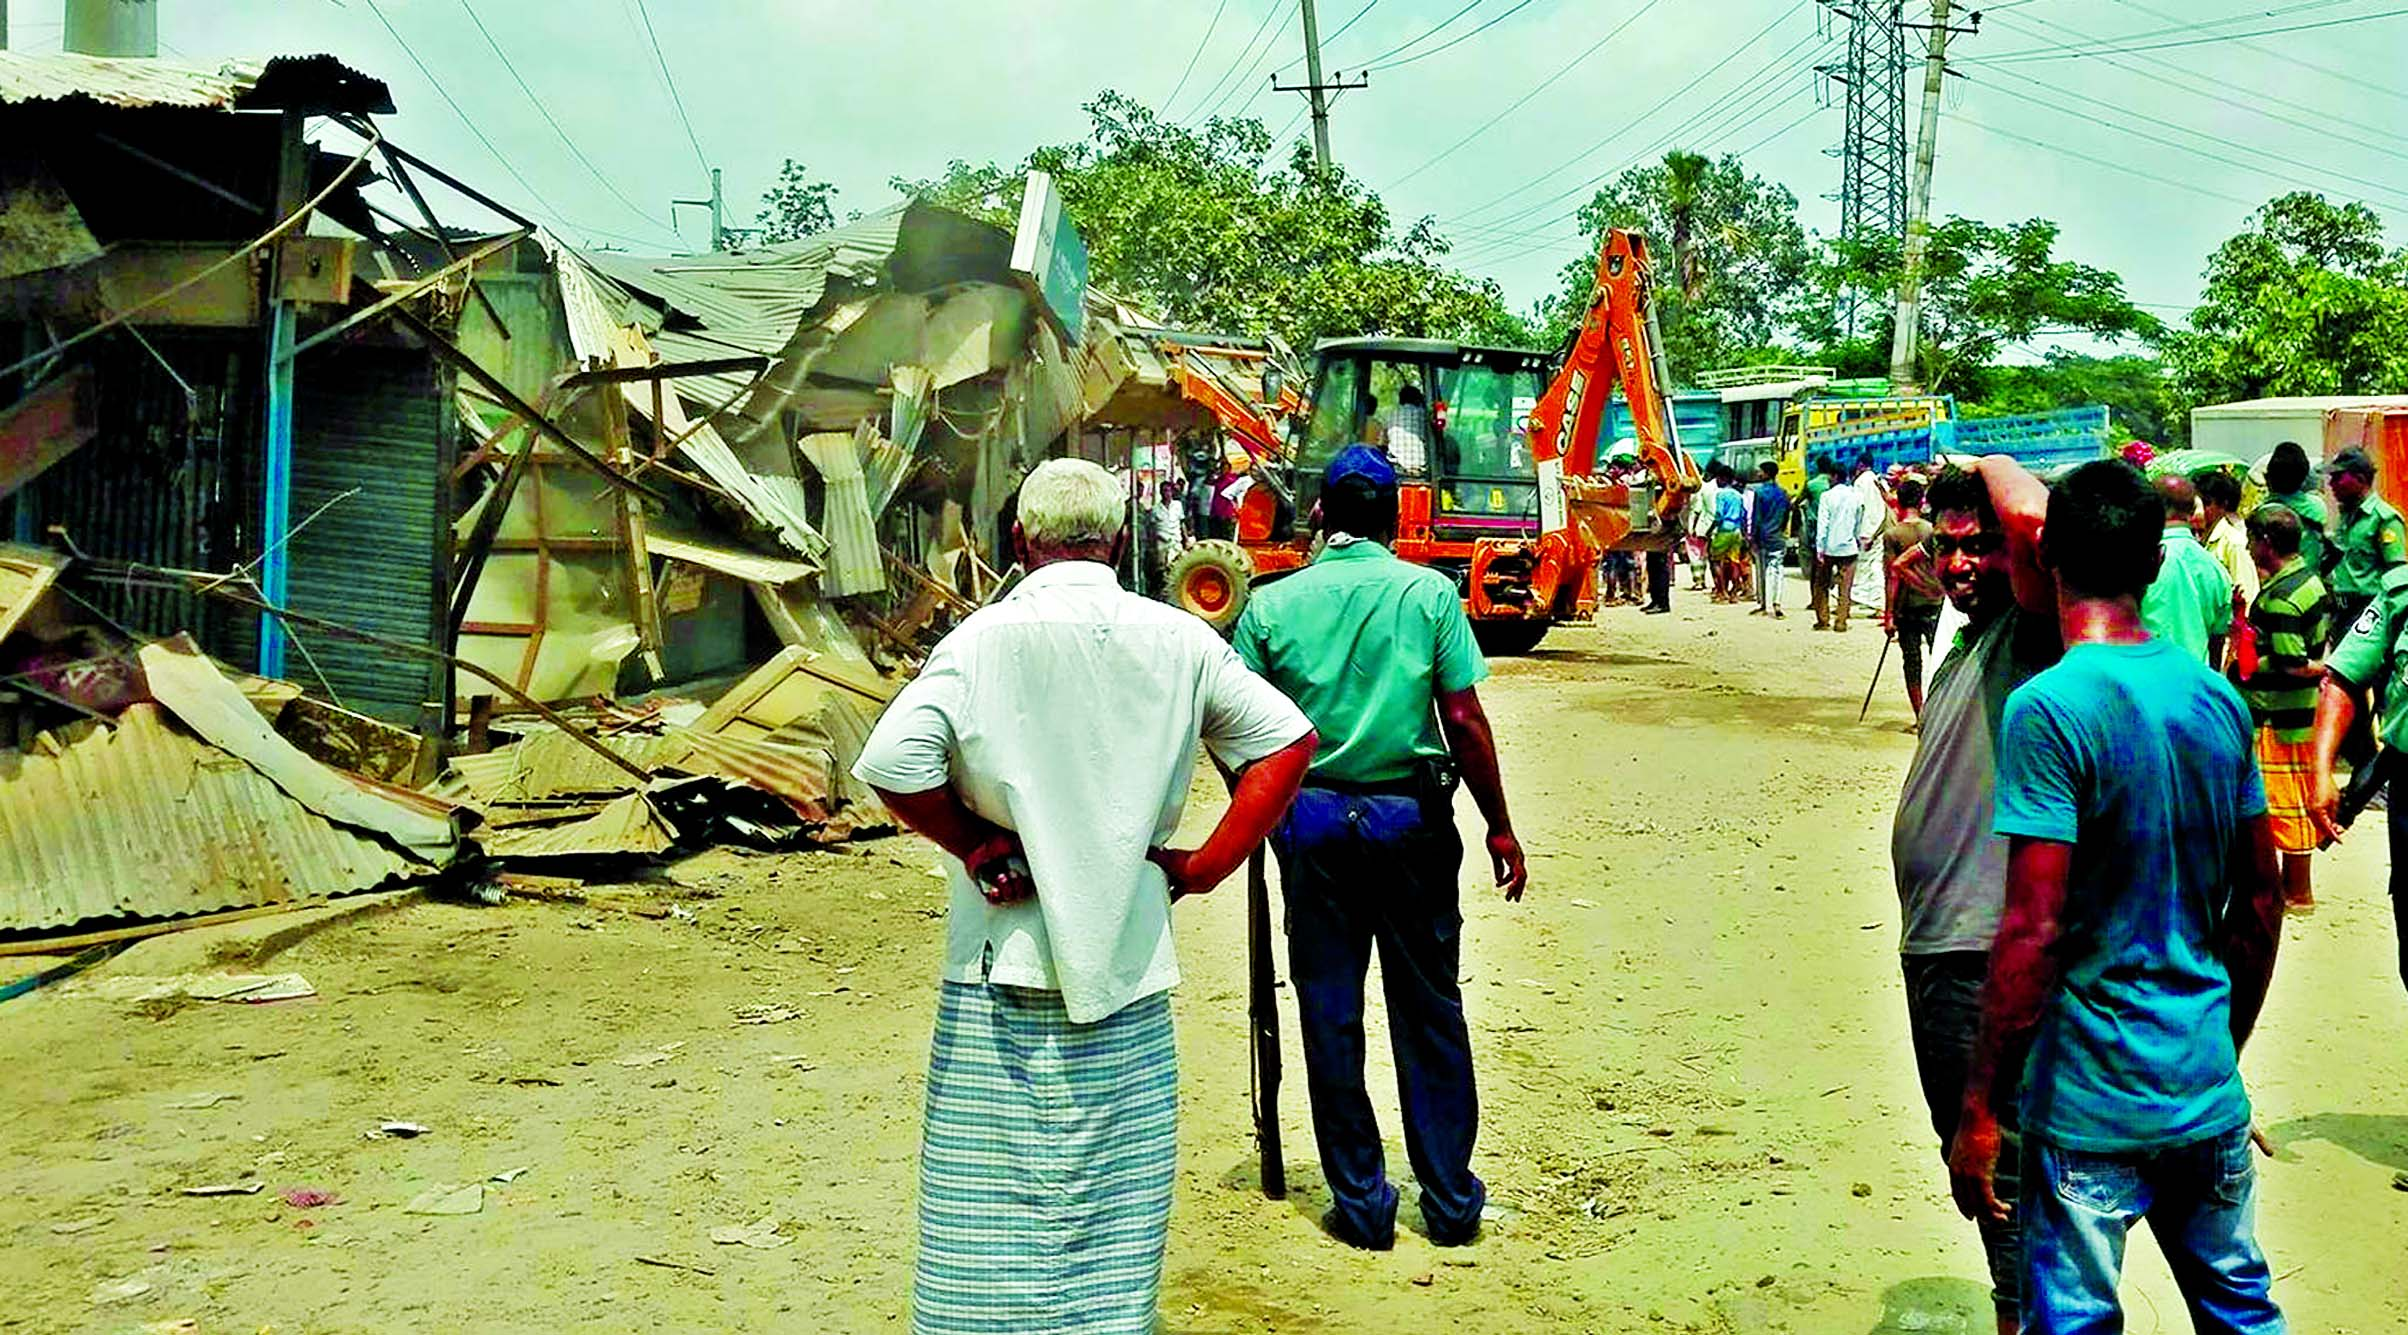 R & H Division, Dhaka District Administration and Rampura Traffic Zone jointly evicted unauthorized structures in Demra Staff Quarter area on Tuesday.